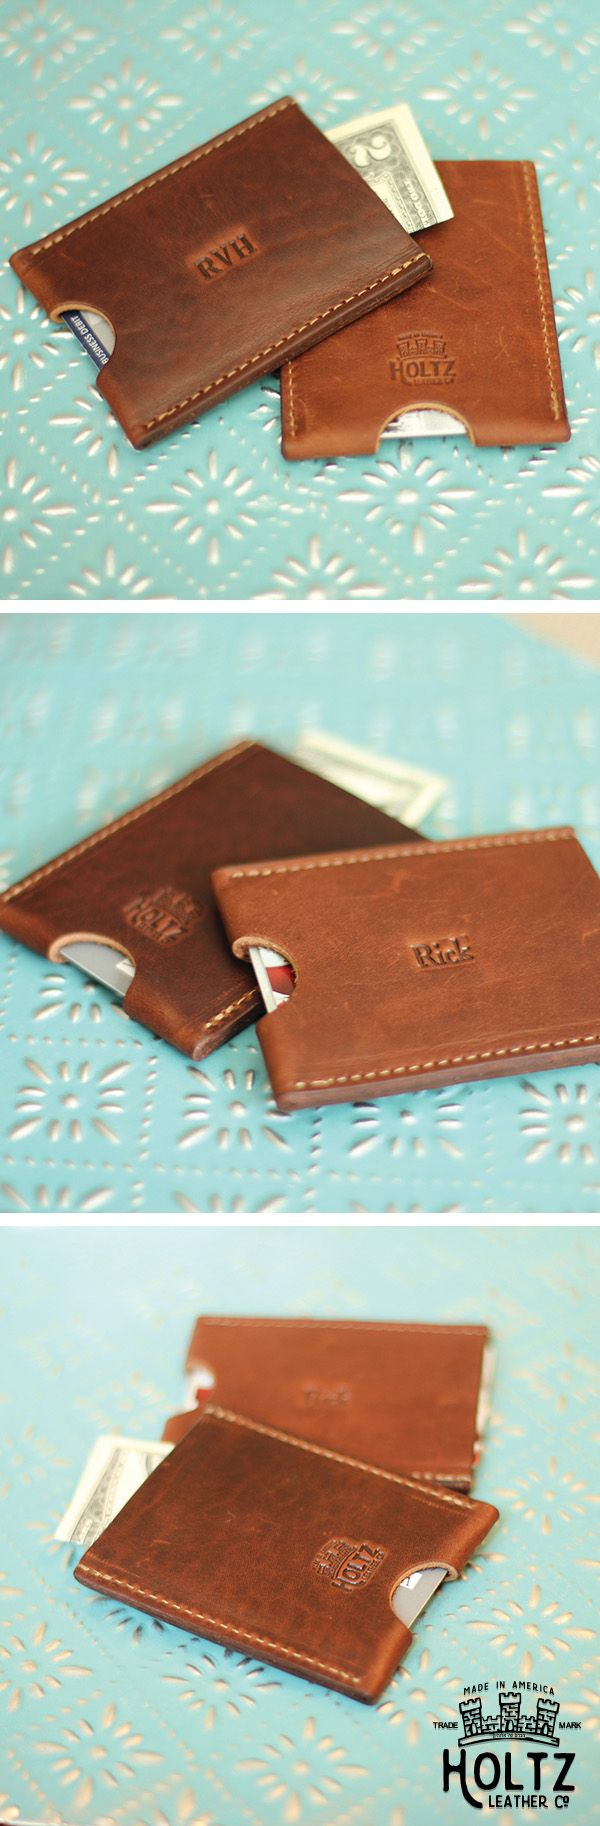 Sleek and slim, The Jefferson Card Holder Wallet makes a great gift for your groomsmen.  The Jefferson can hold up to 5 cards and comfortably fits in their front pocket.  Add their initials to make it a memorable keepsake.